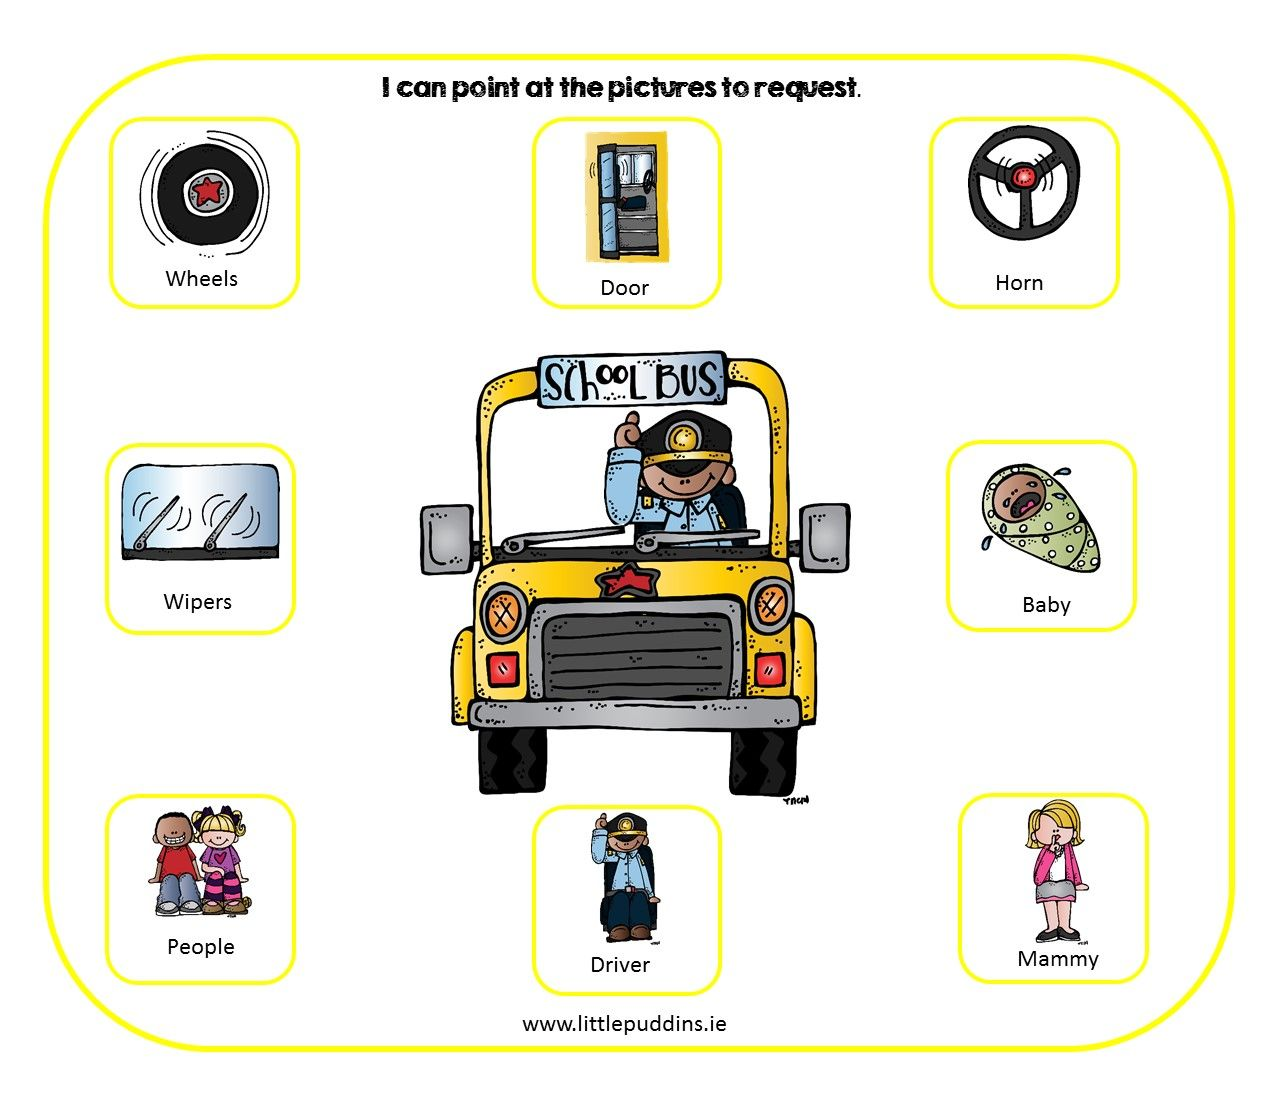 worksheet Wheels On The Bus Printable Worksheets the wheels on bus go round and cs dh pinterest free nursery rhyme interactive printable for children with special needs helping to enco